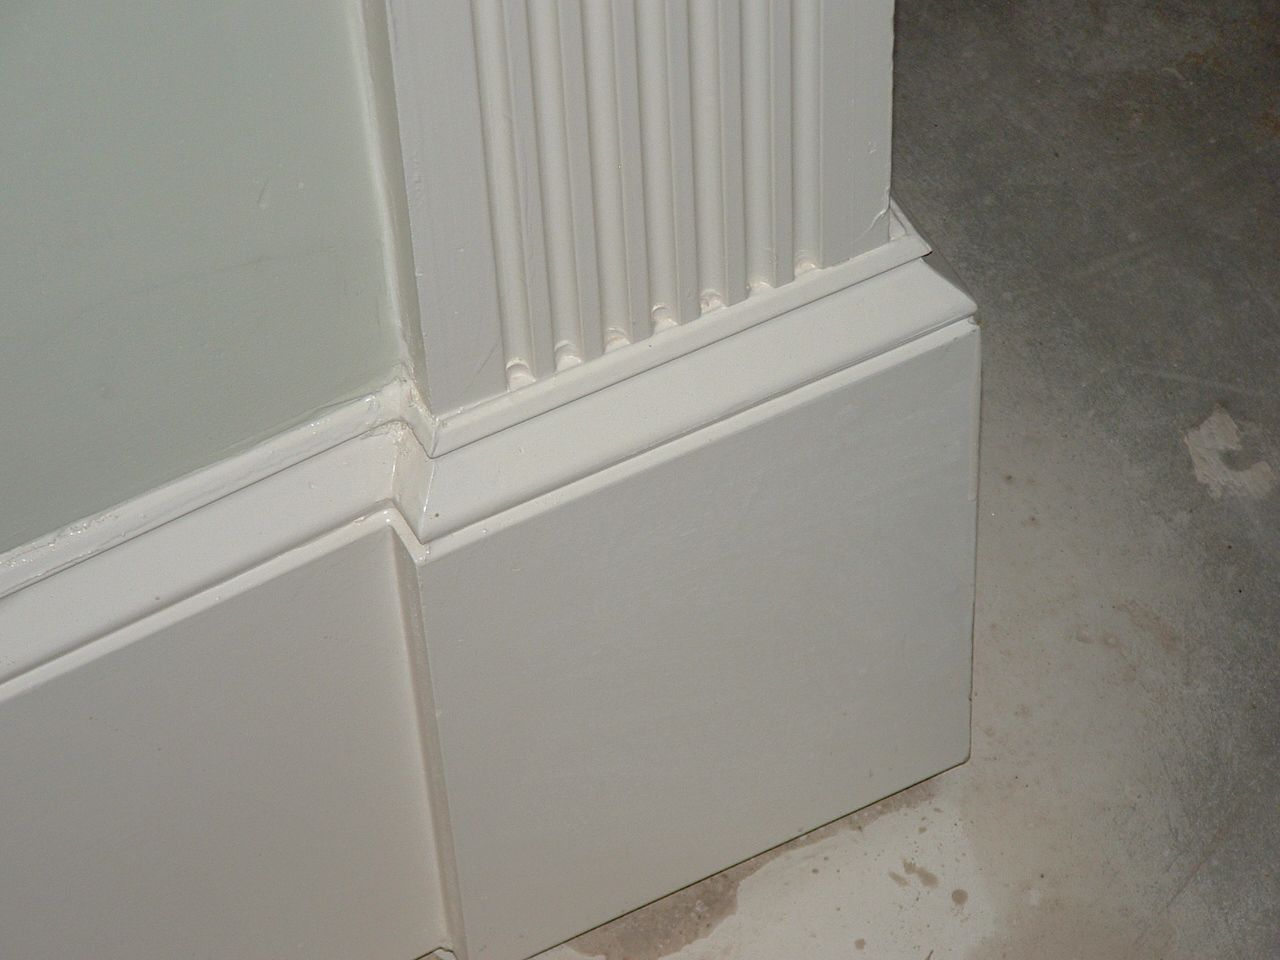 Moulding Trim Trim Moulding Window Moulding Trim Moulds Crown Moulding For The